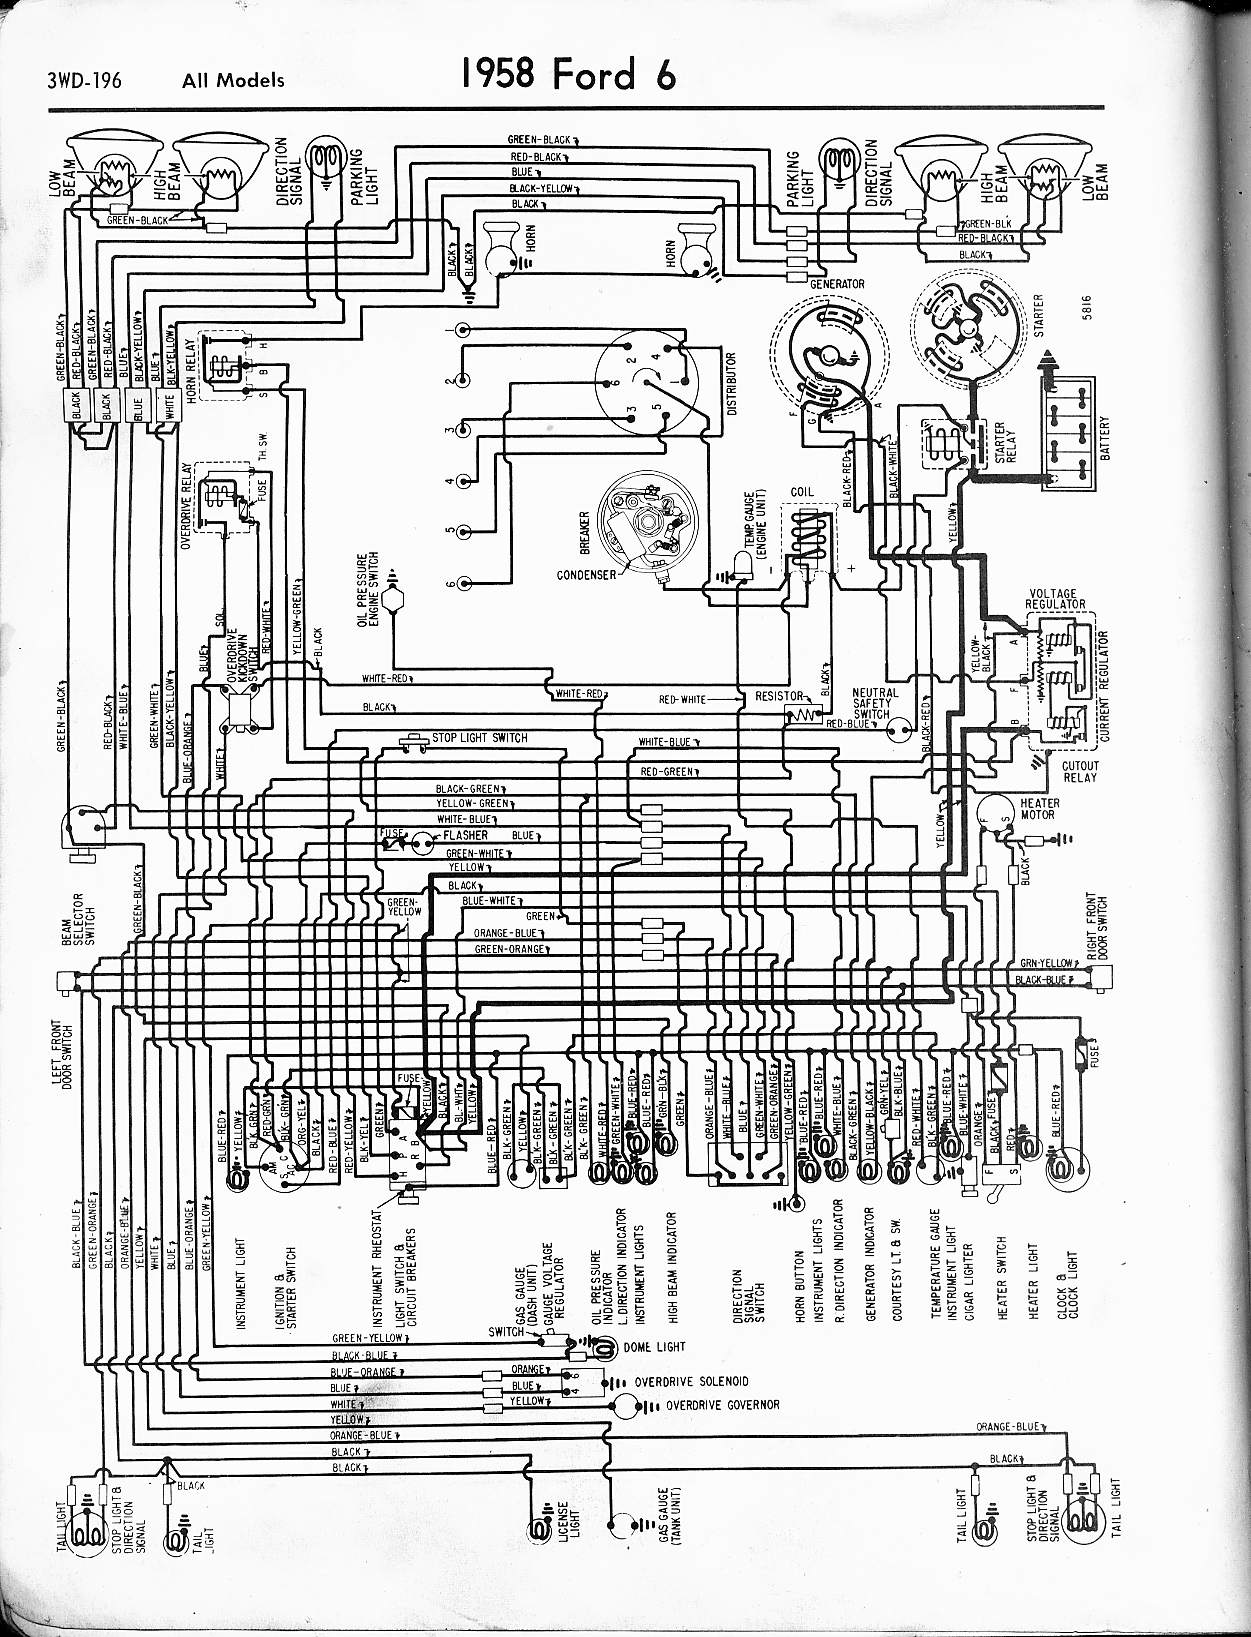 [DIAGRAM_4FR]  57-65 Ford Wiring Diagrams | 1966 Ford F100 Engine Wiring Diagram Free Picture |  | The Old Car Manual Project